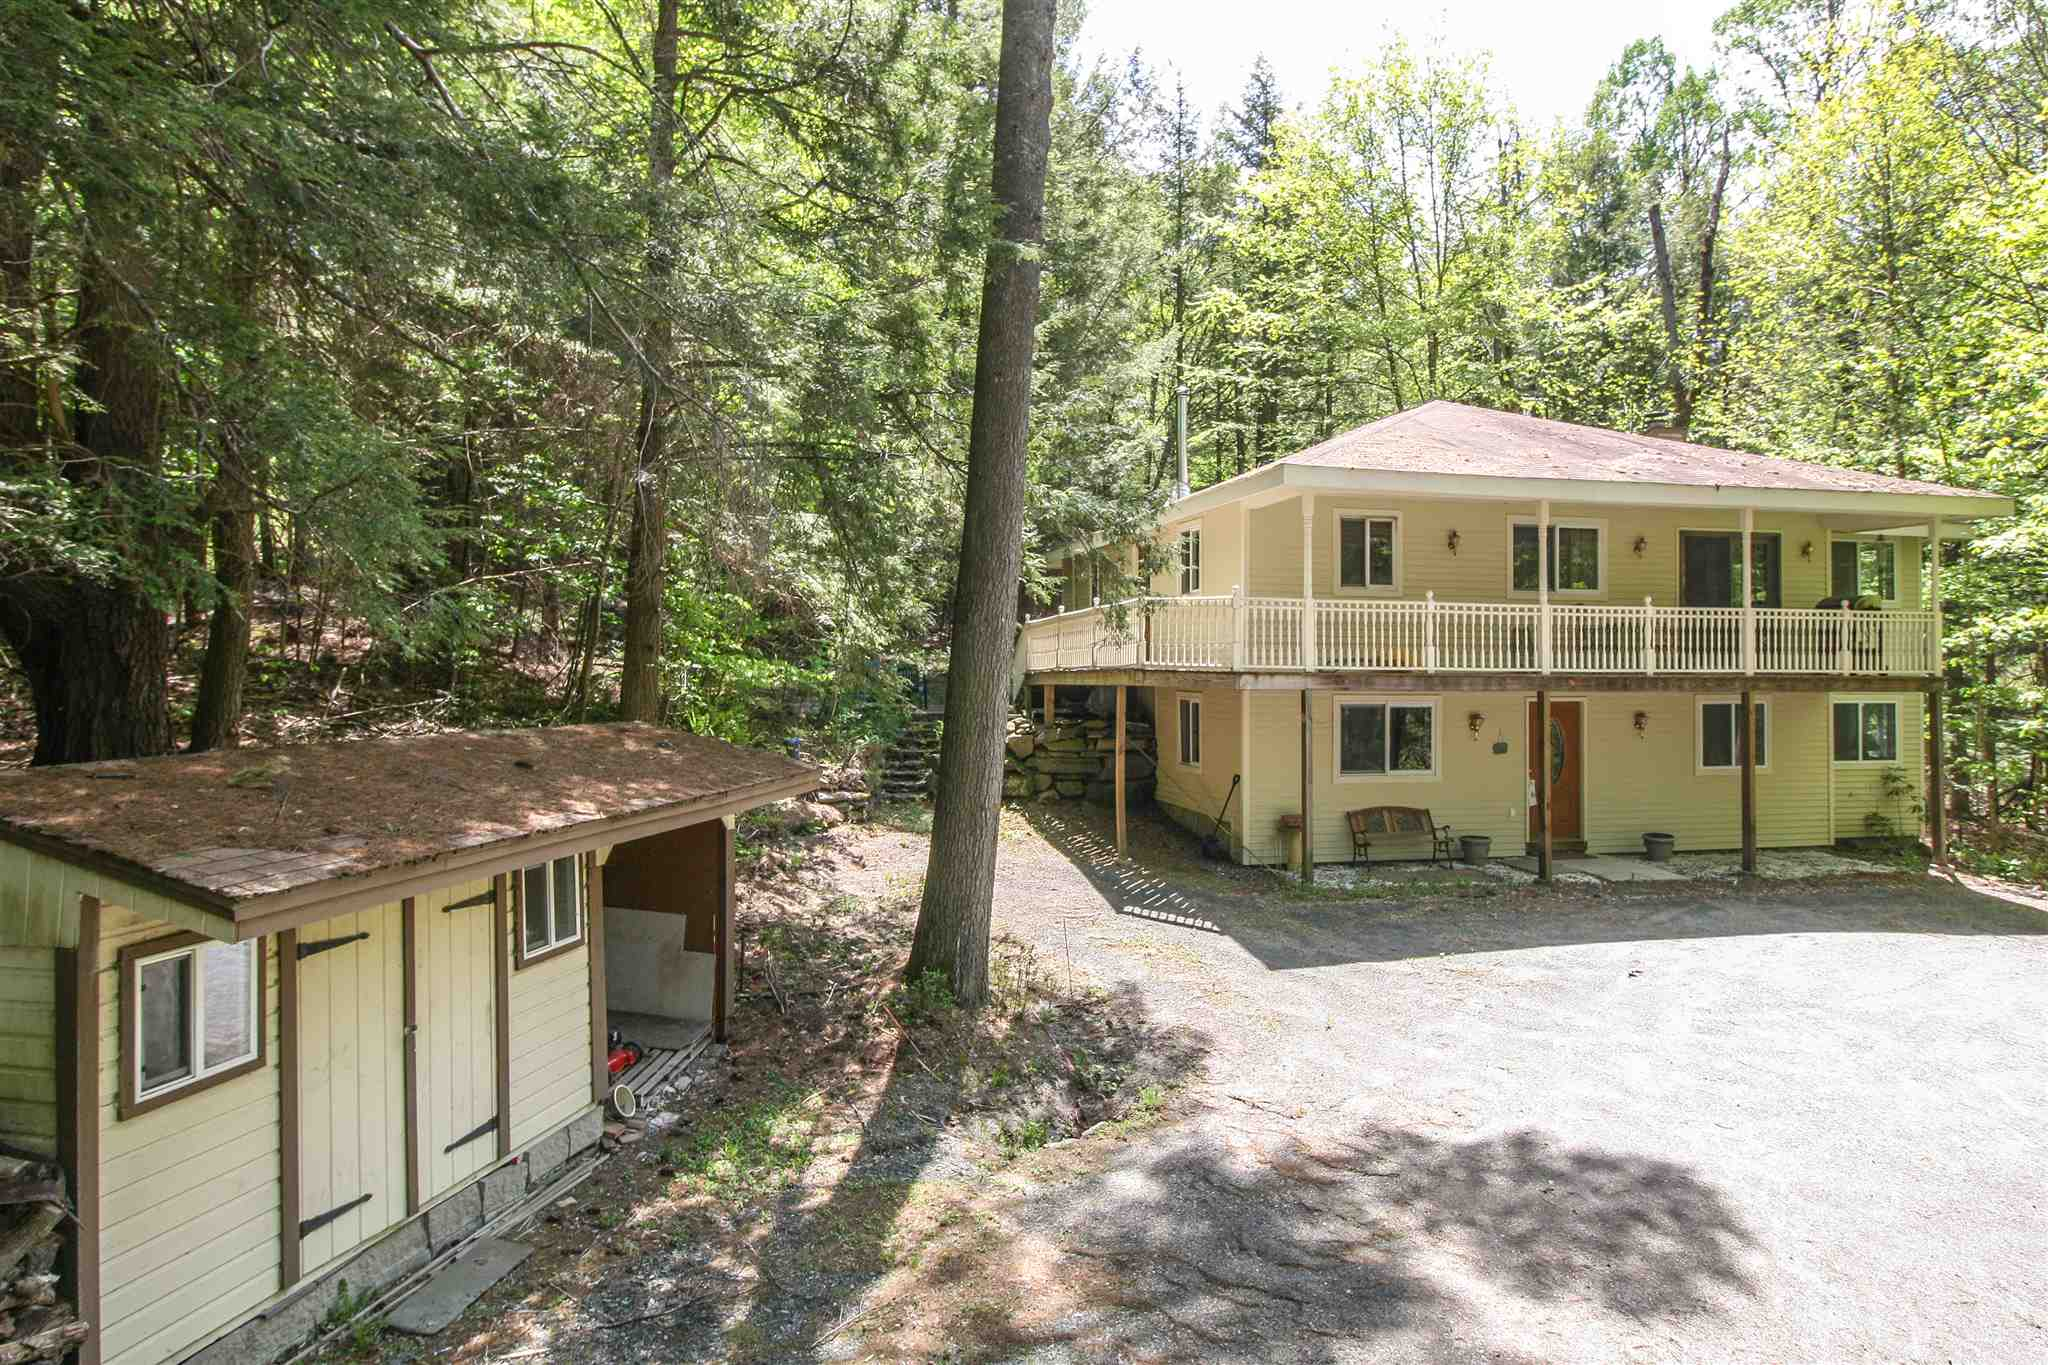 VILLAGE OF QUECHEE IN TOWN OF HARTFORD VTHomes for sale